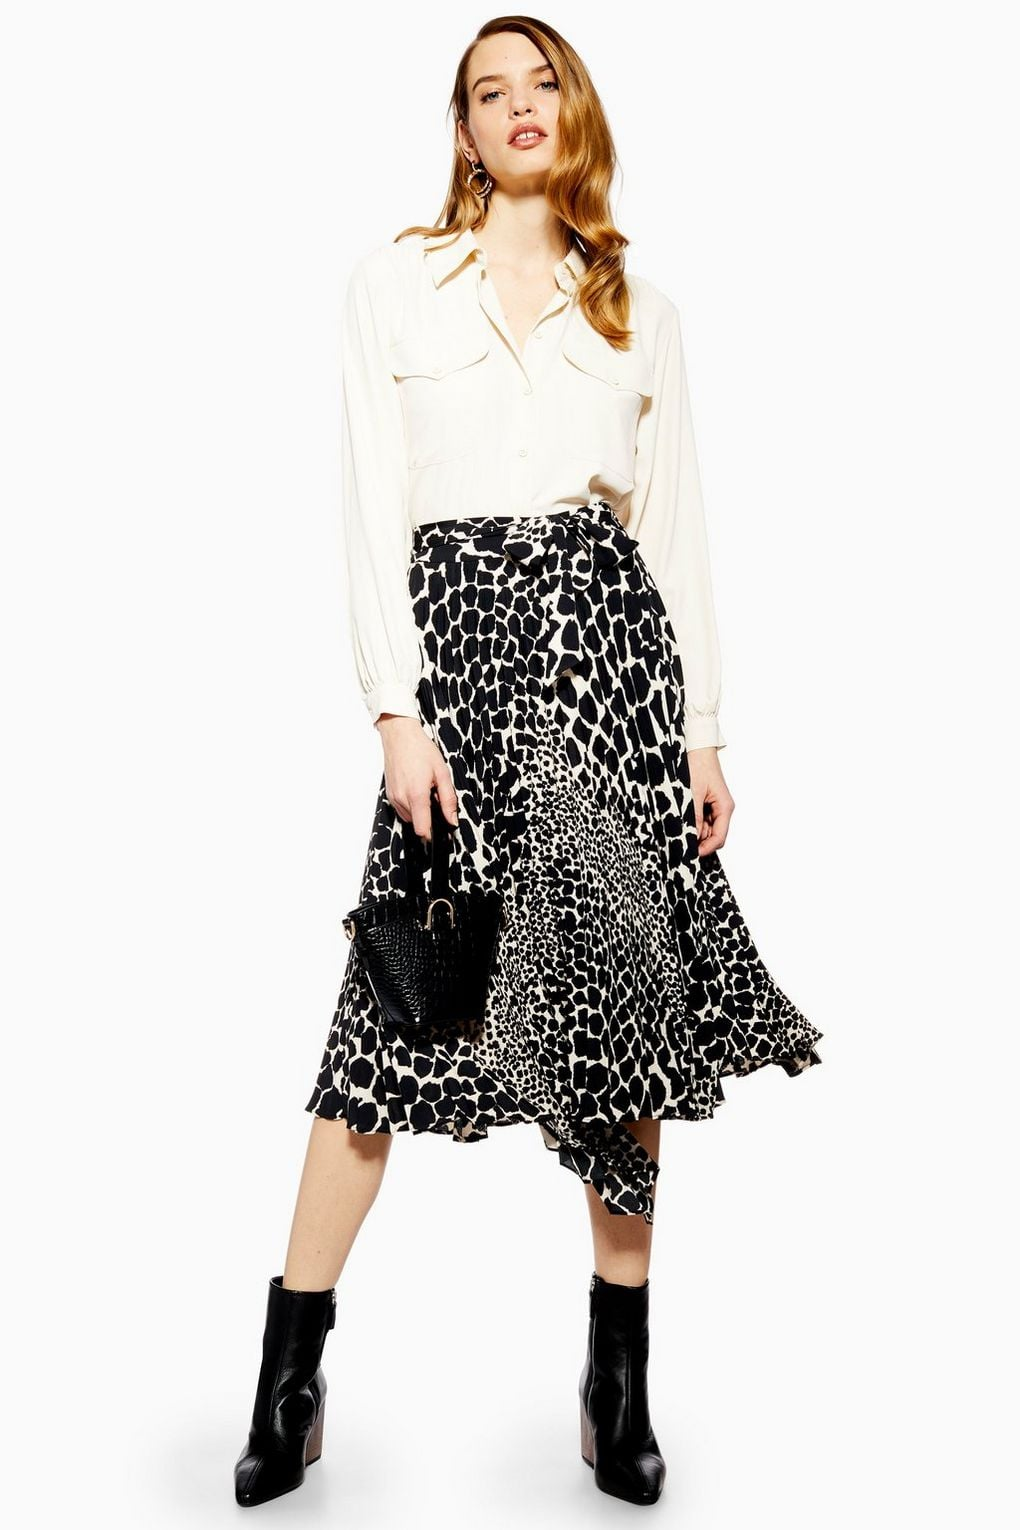 best selection of 2019 shop for newest crazy price Topshop Giraffe Spot Pleated Midi Skirt | Shop the Skirt ...